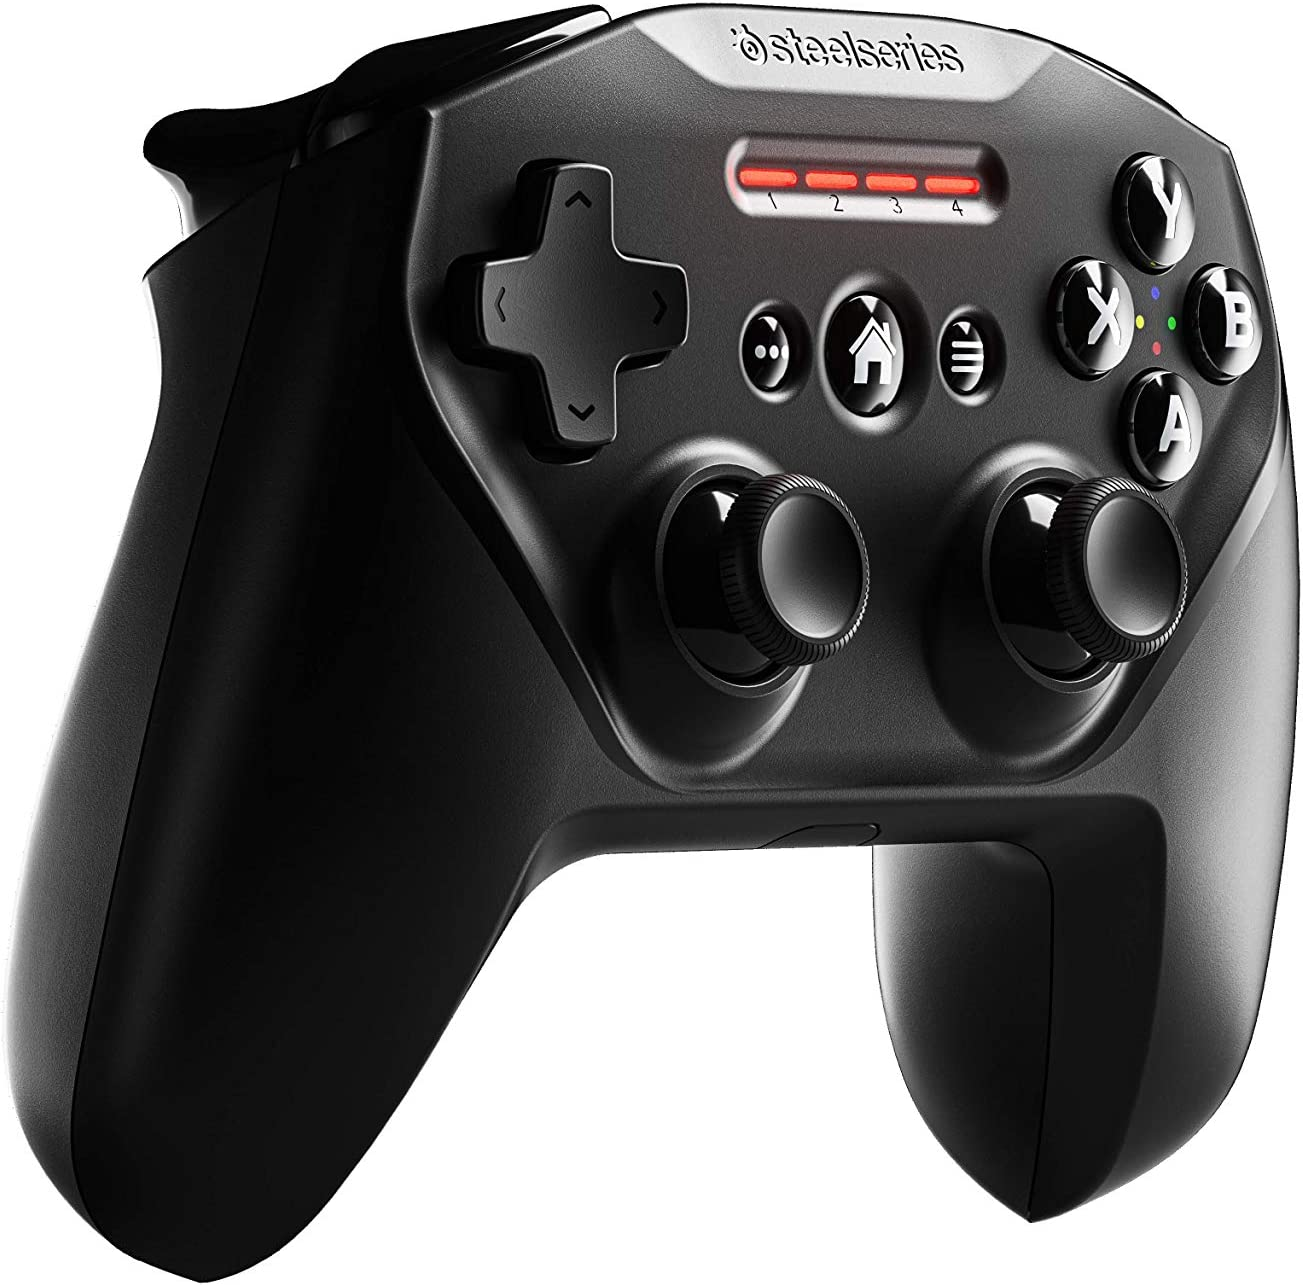 SteelSeries Nimbus+ Bluetooth Mobile Gaming Controller with iPhone Mount - 50+ Hour Battery Life - Apple-Licensed - Made for iOS, iPadOS, tvOS (69089)